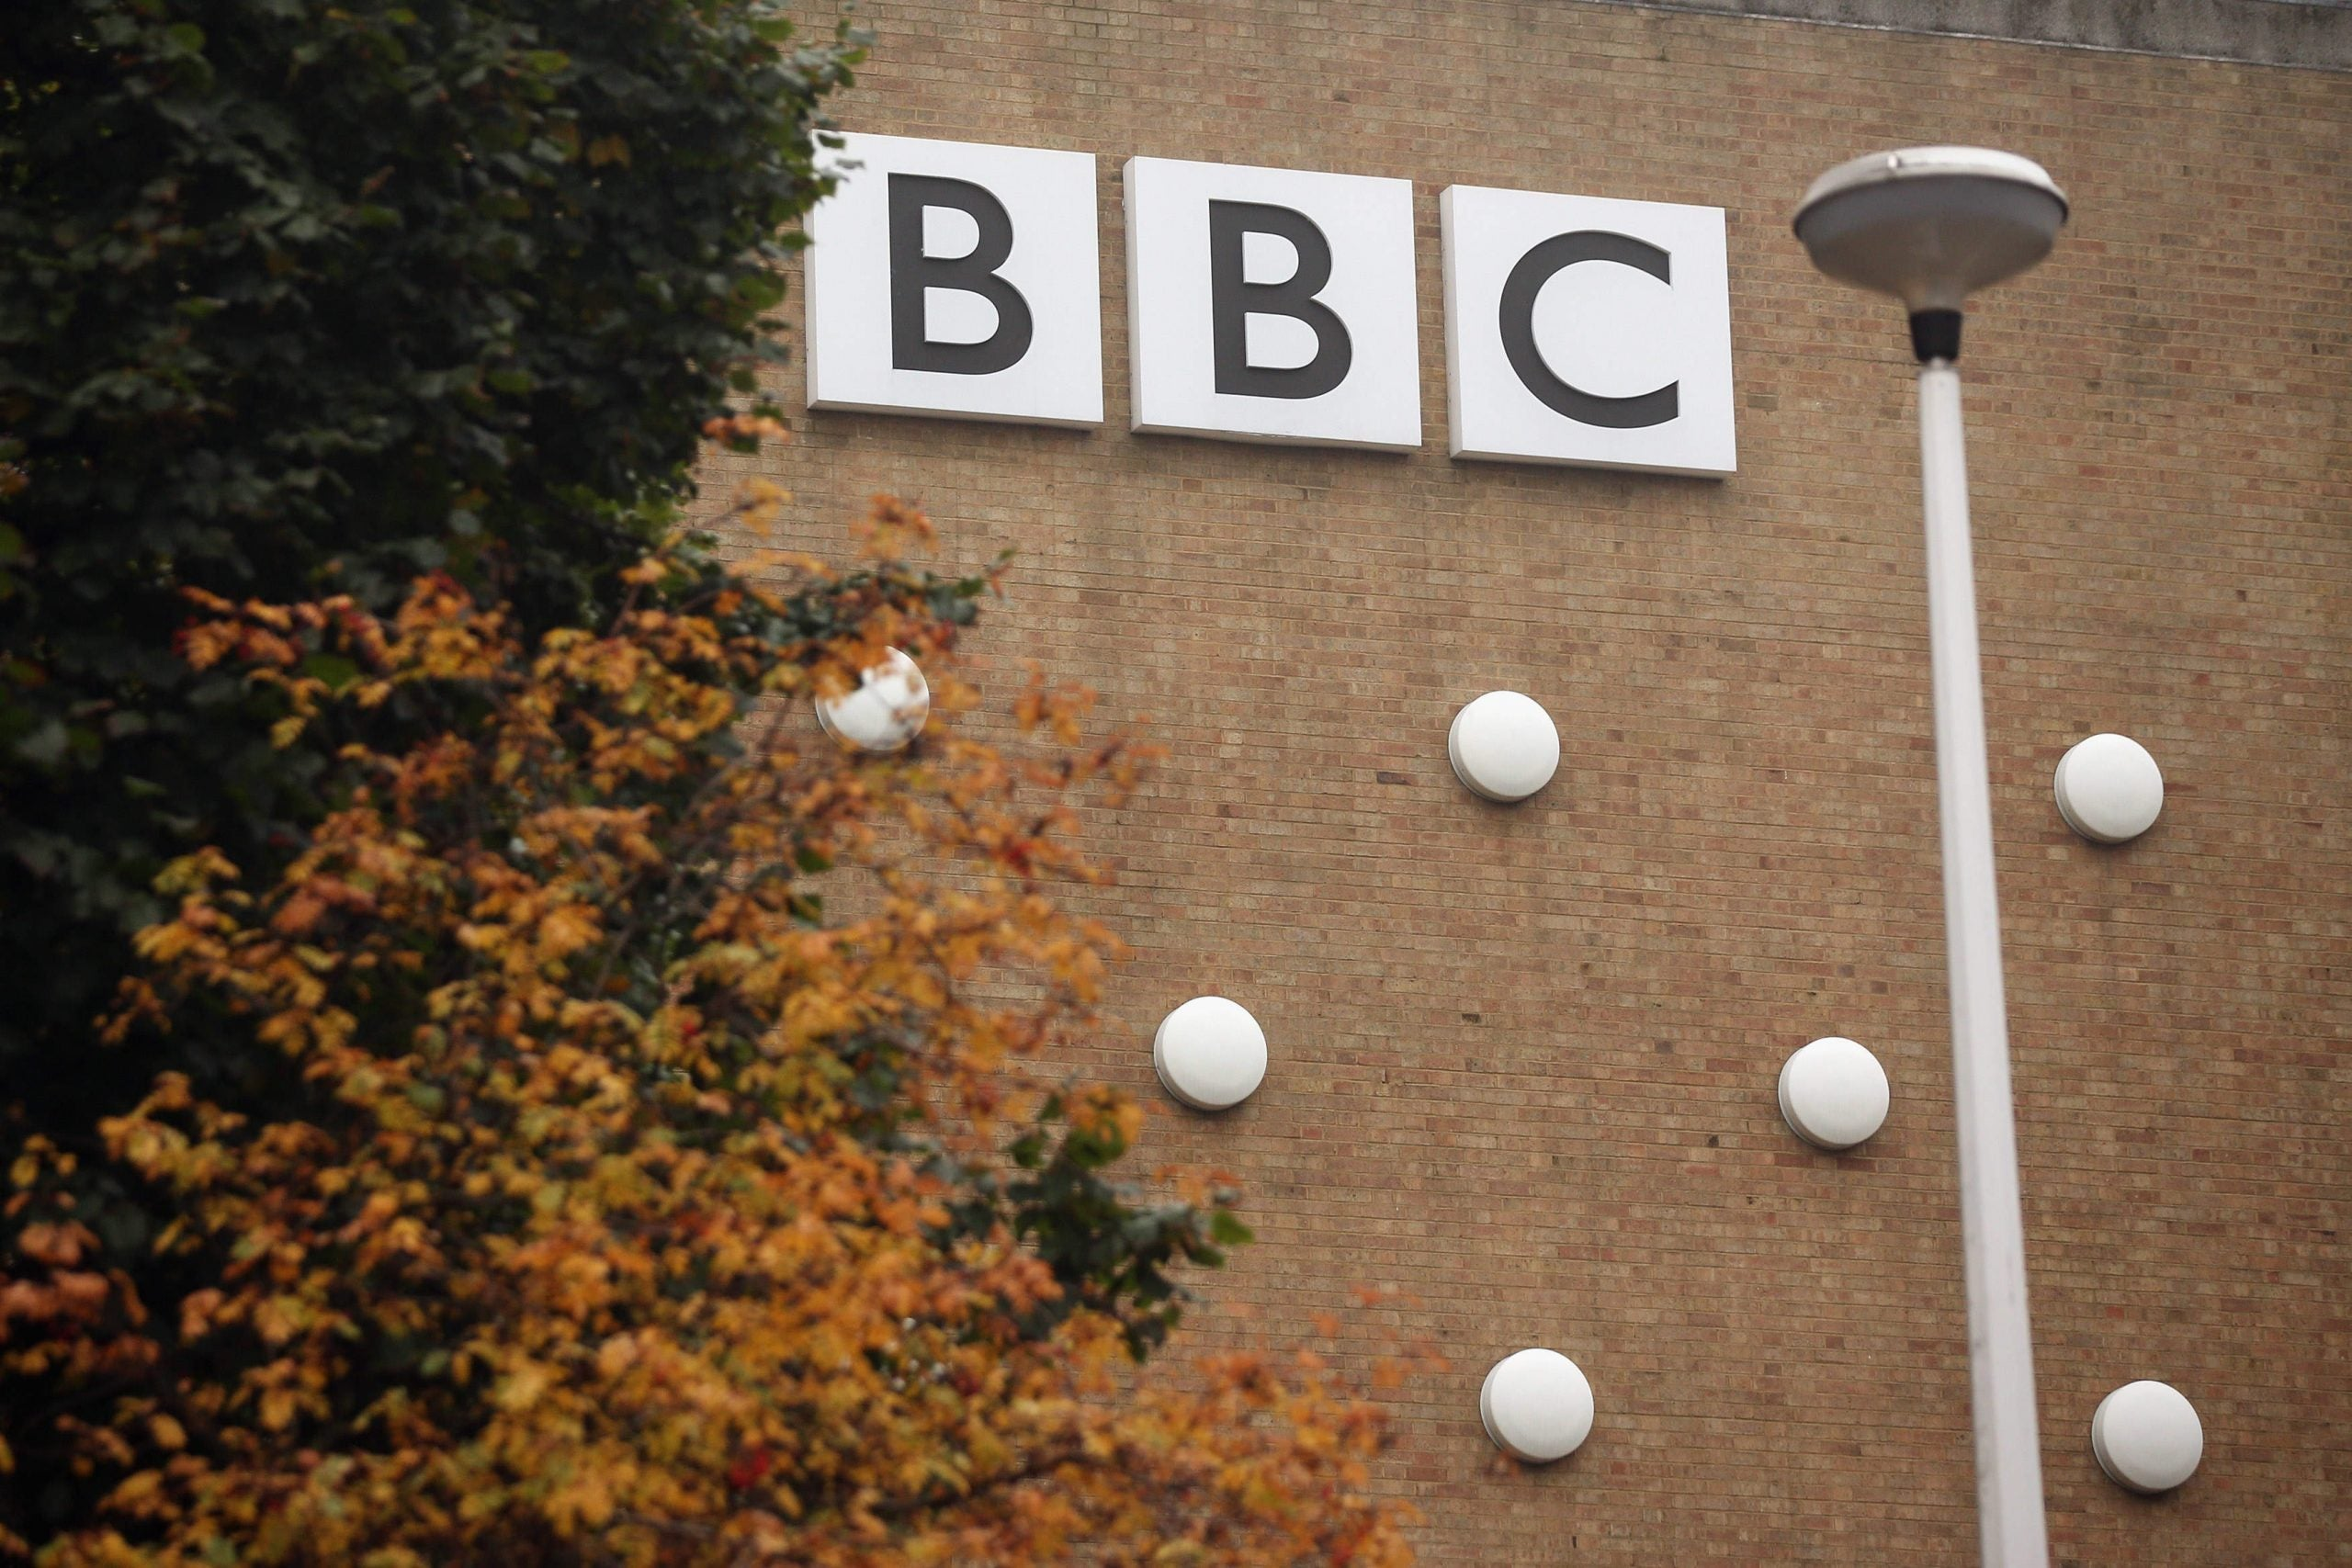 Auntie under attack: life inside the BBC